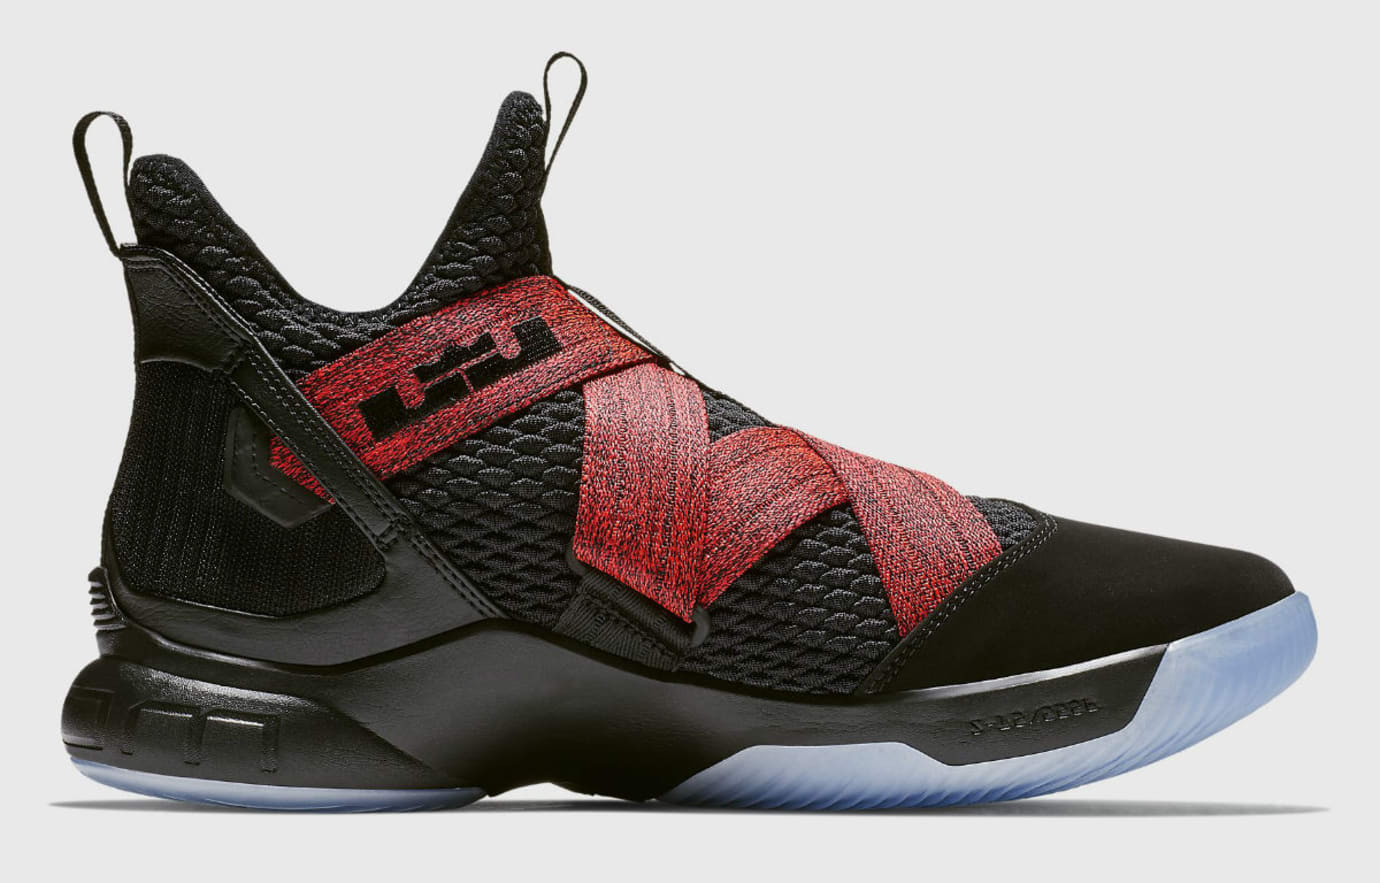 798206dc746 Image via Nike Nike LeBron Soldier 12 XII Bred Release Date AO2609-003  Medial